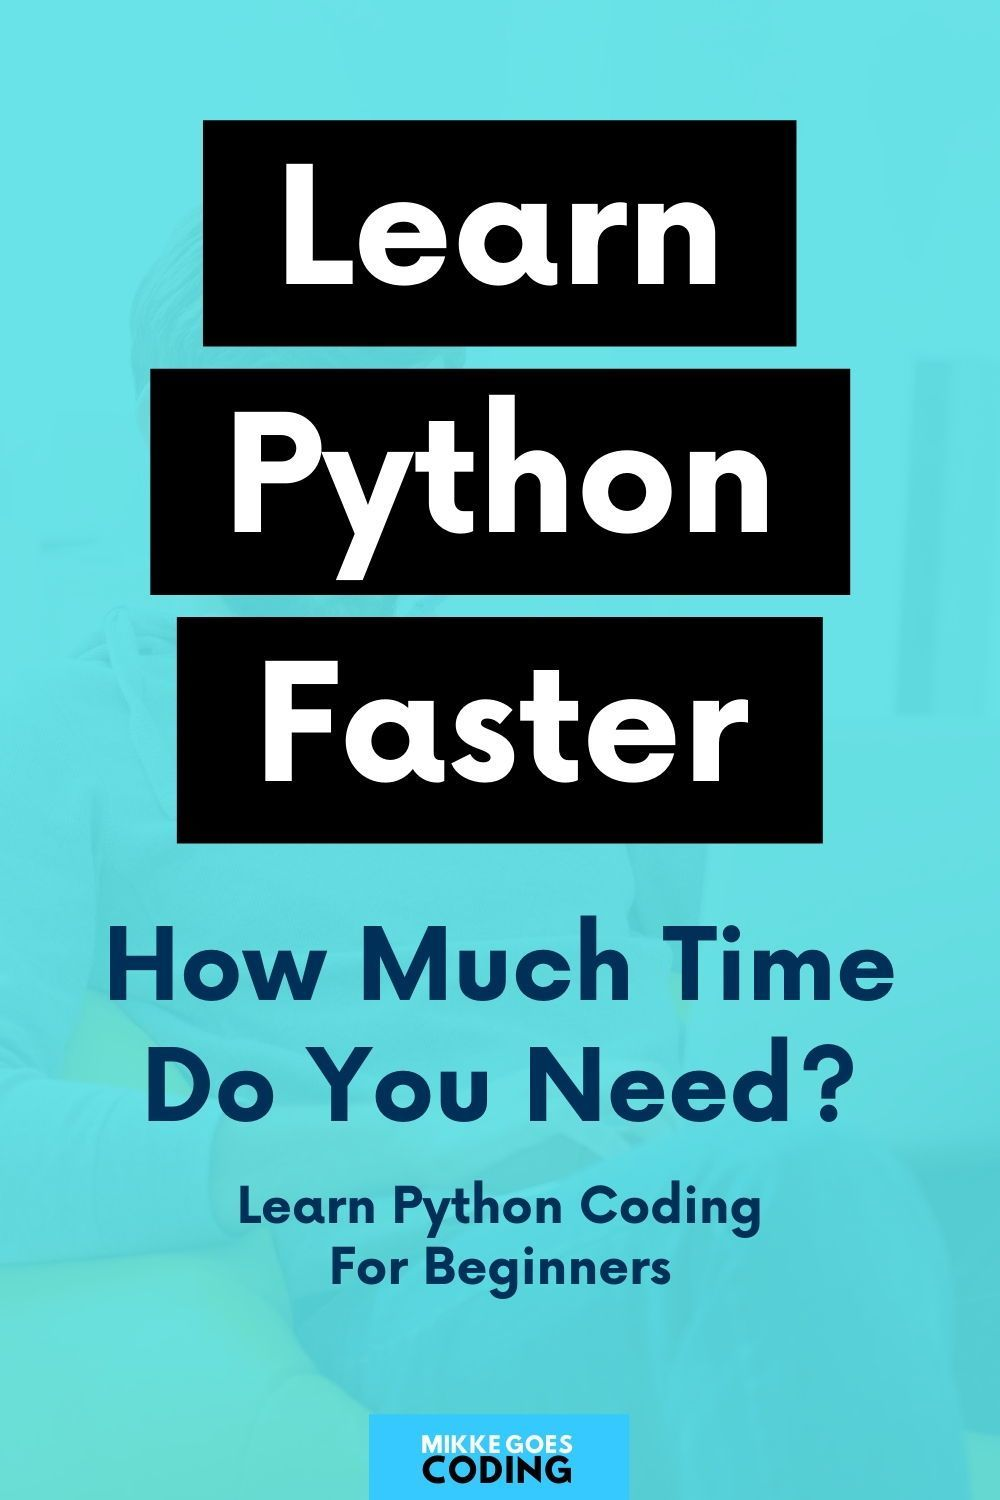 How Long Does It Take To Learn Python Coding 2020 Beginner S Guide In 2020 Learn Computer Coding Learn Programming Learn Web Development